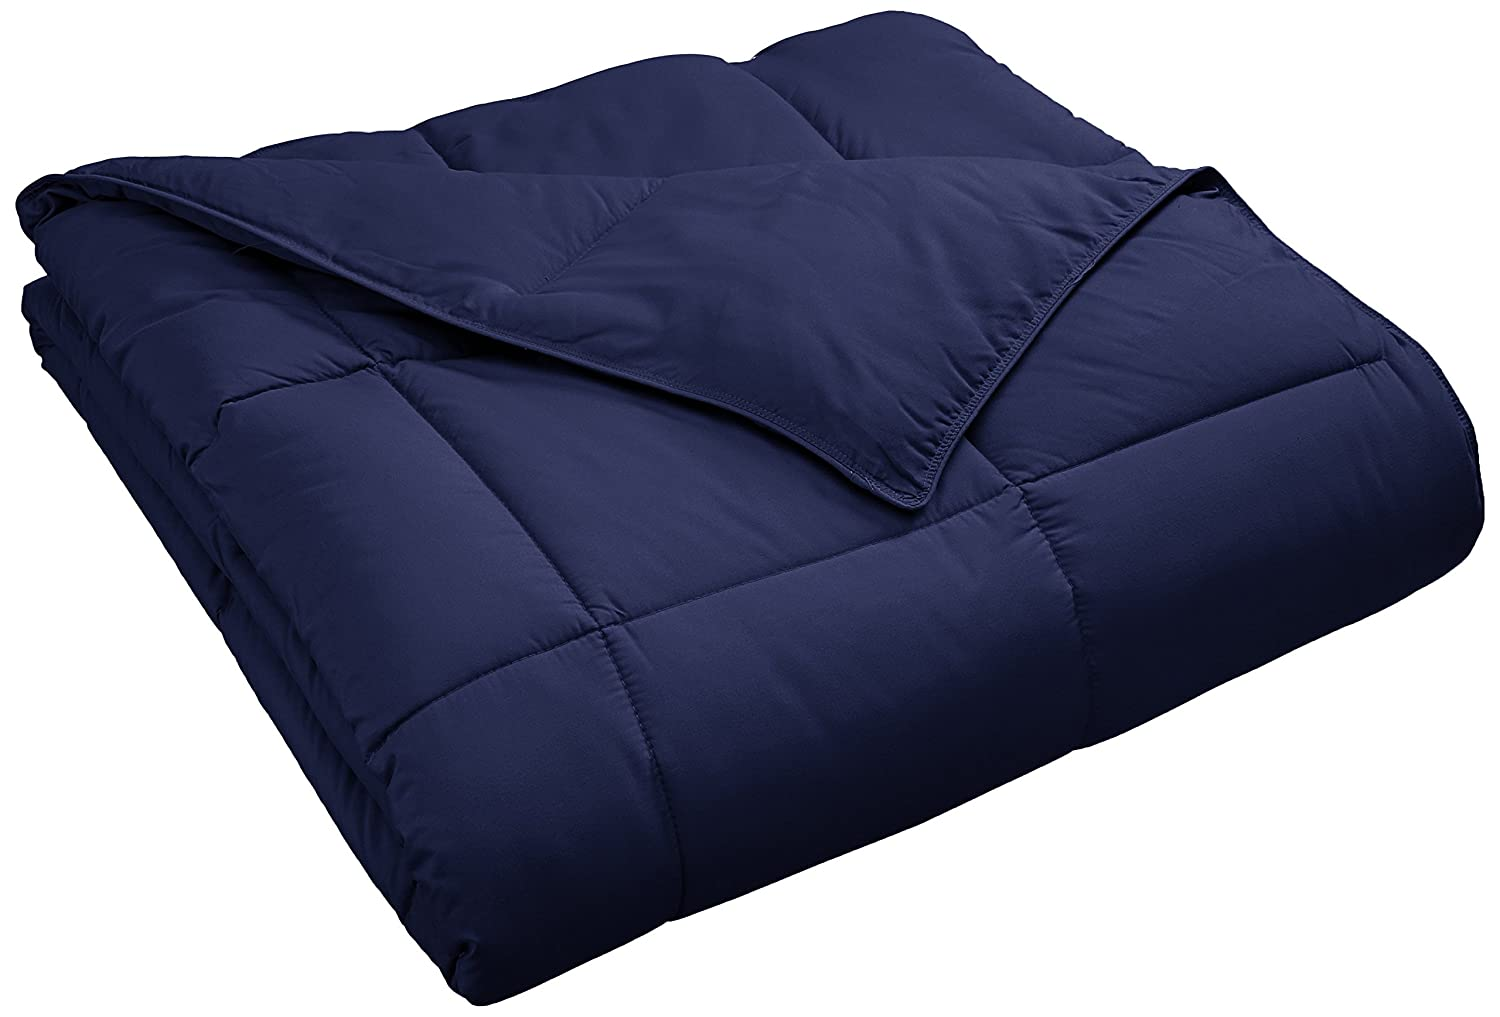 Comforter with Baffle Box Construction, Full/Queen, Navy Blue